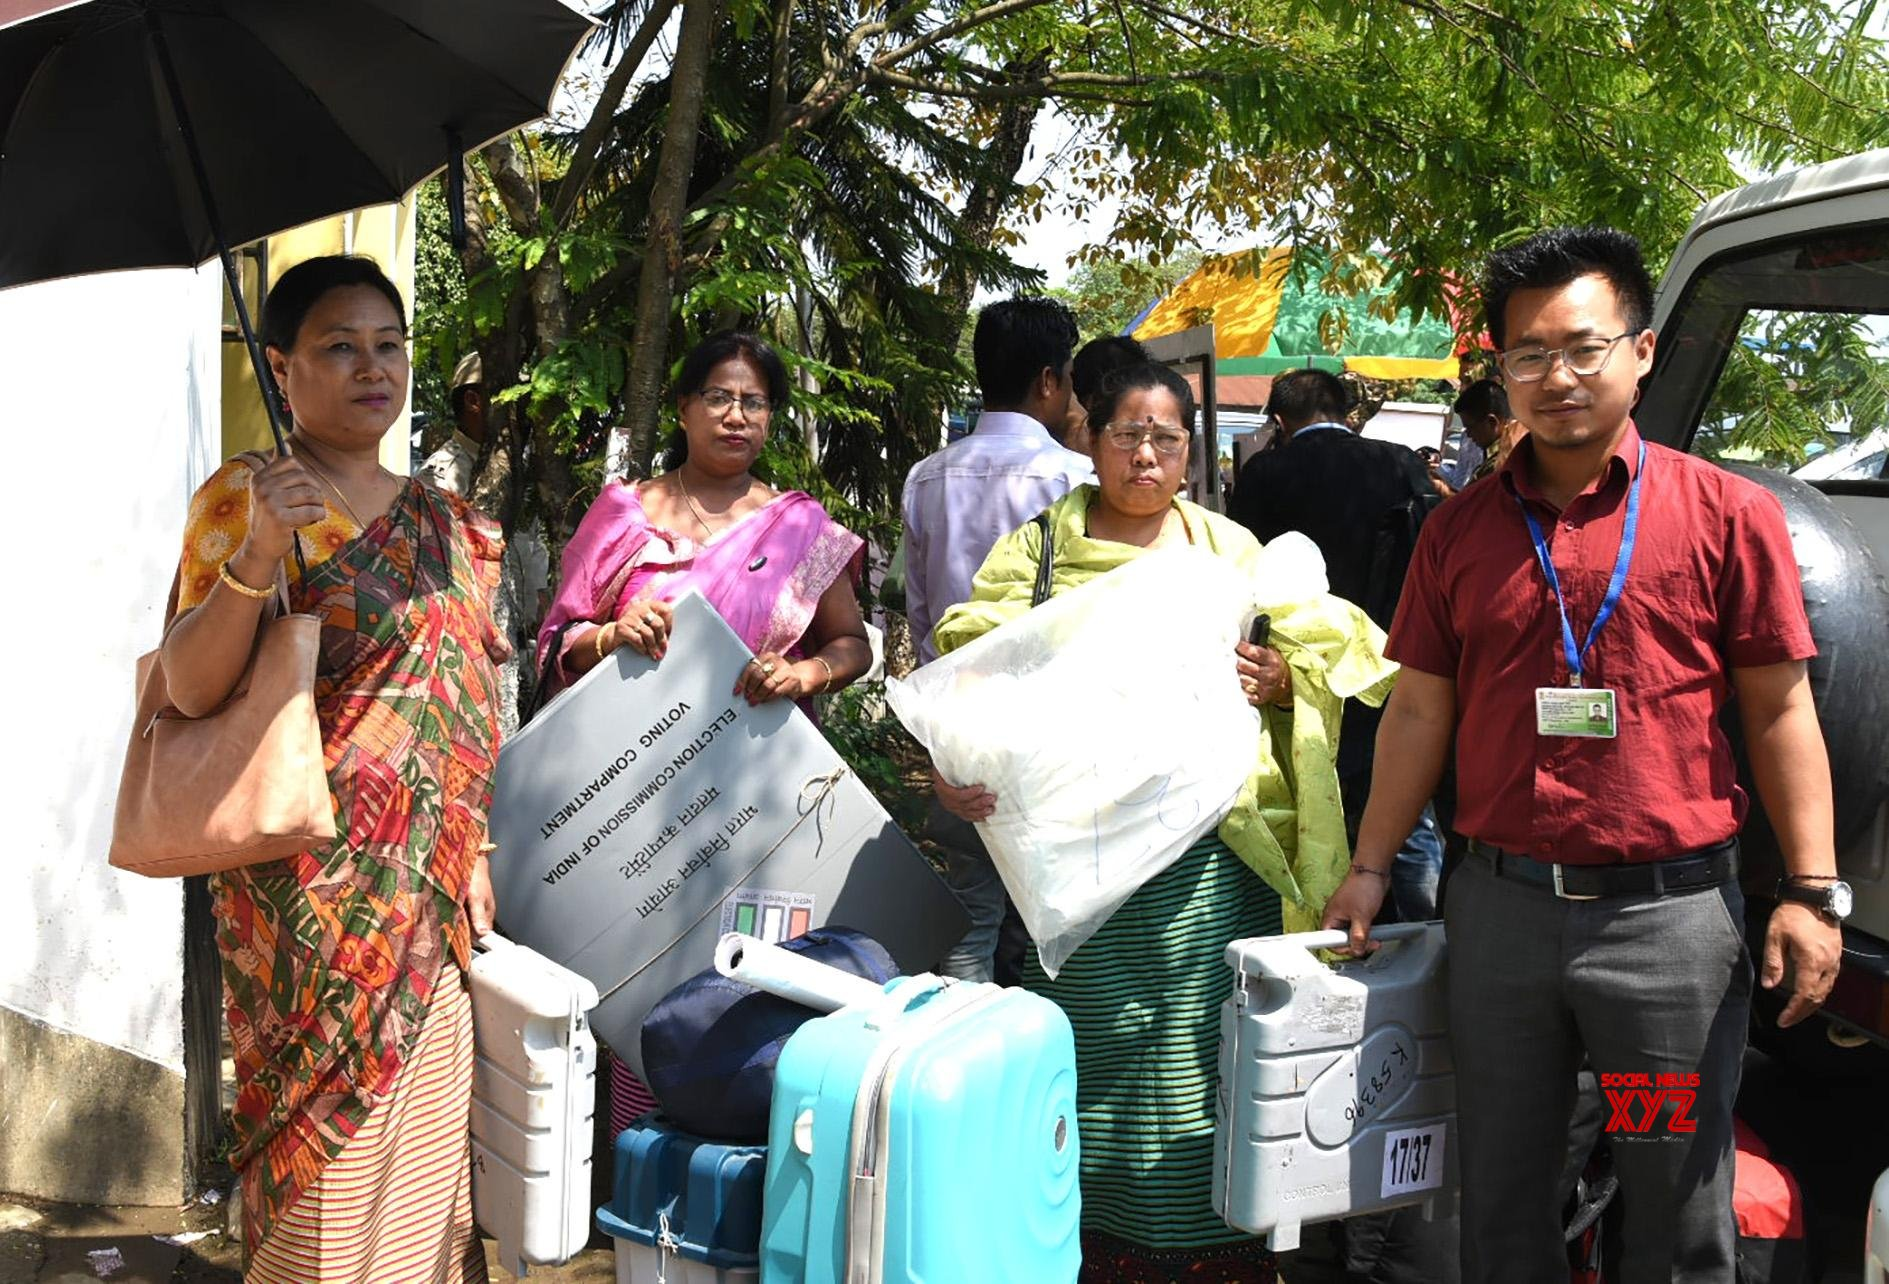 Imphal West: 2019 Lok Sabha elections - Polling officials collect EVMs and other necessary inputs #Gallery